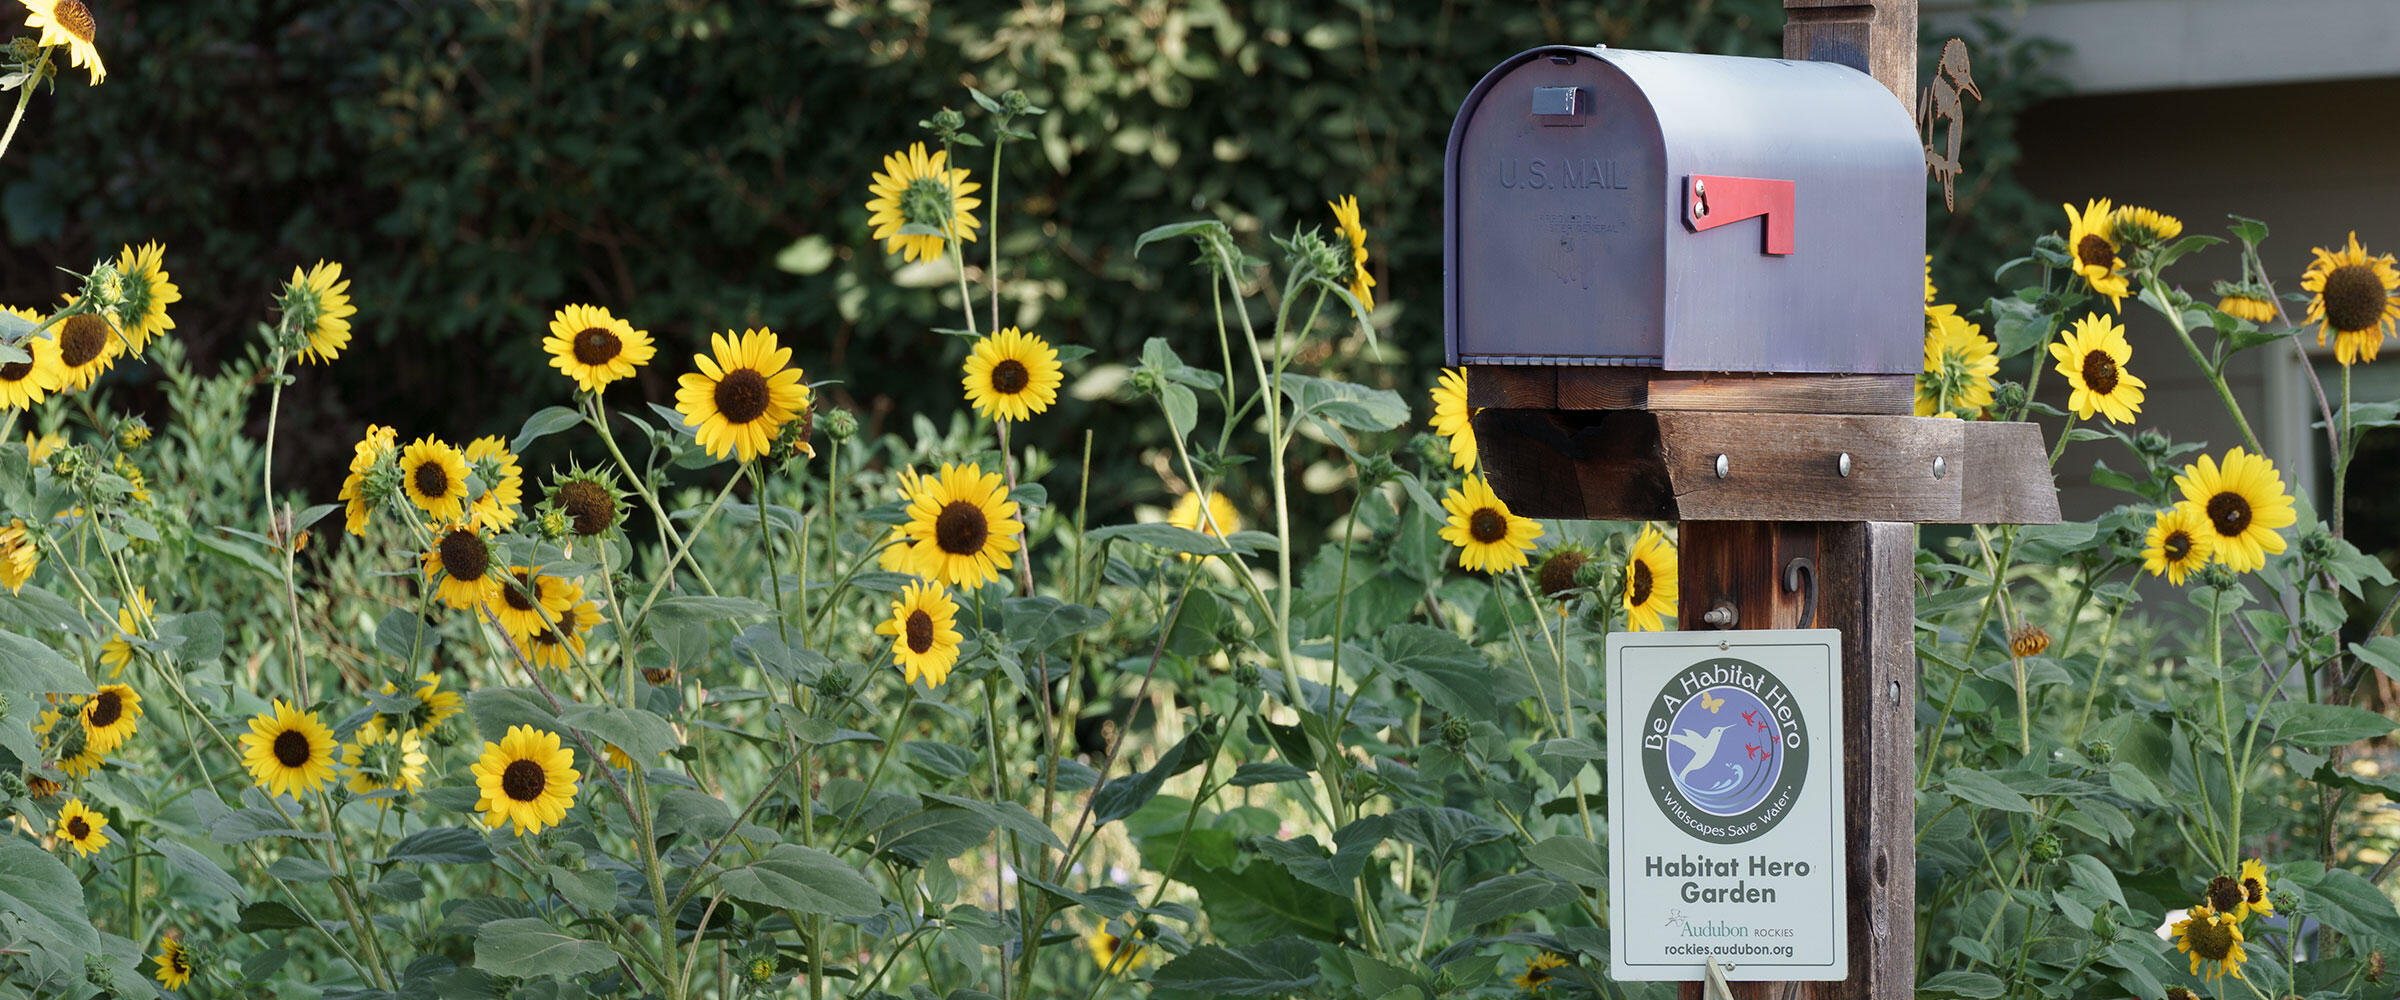 Sunflowers bloom in garden next to a Habitat Hero certification sign.